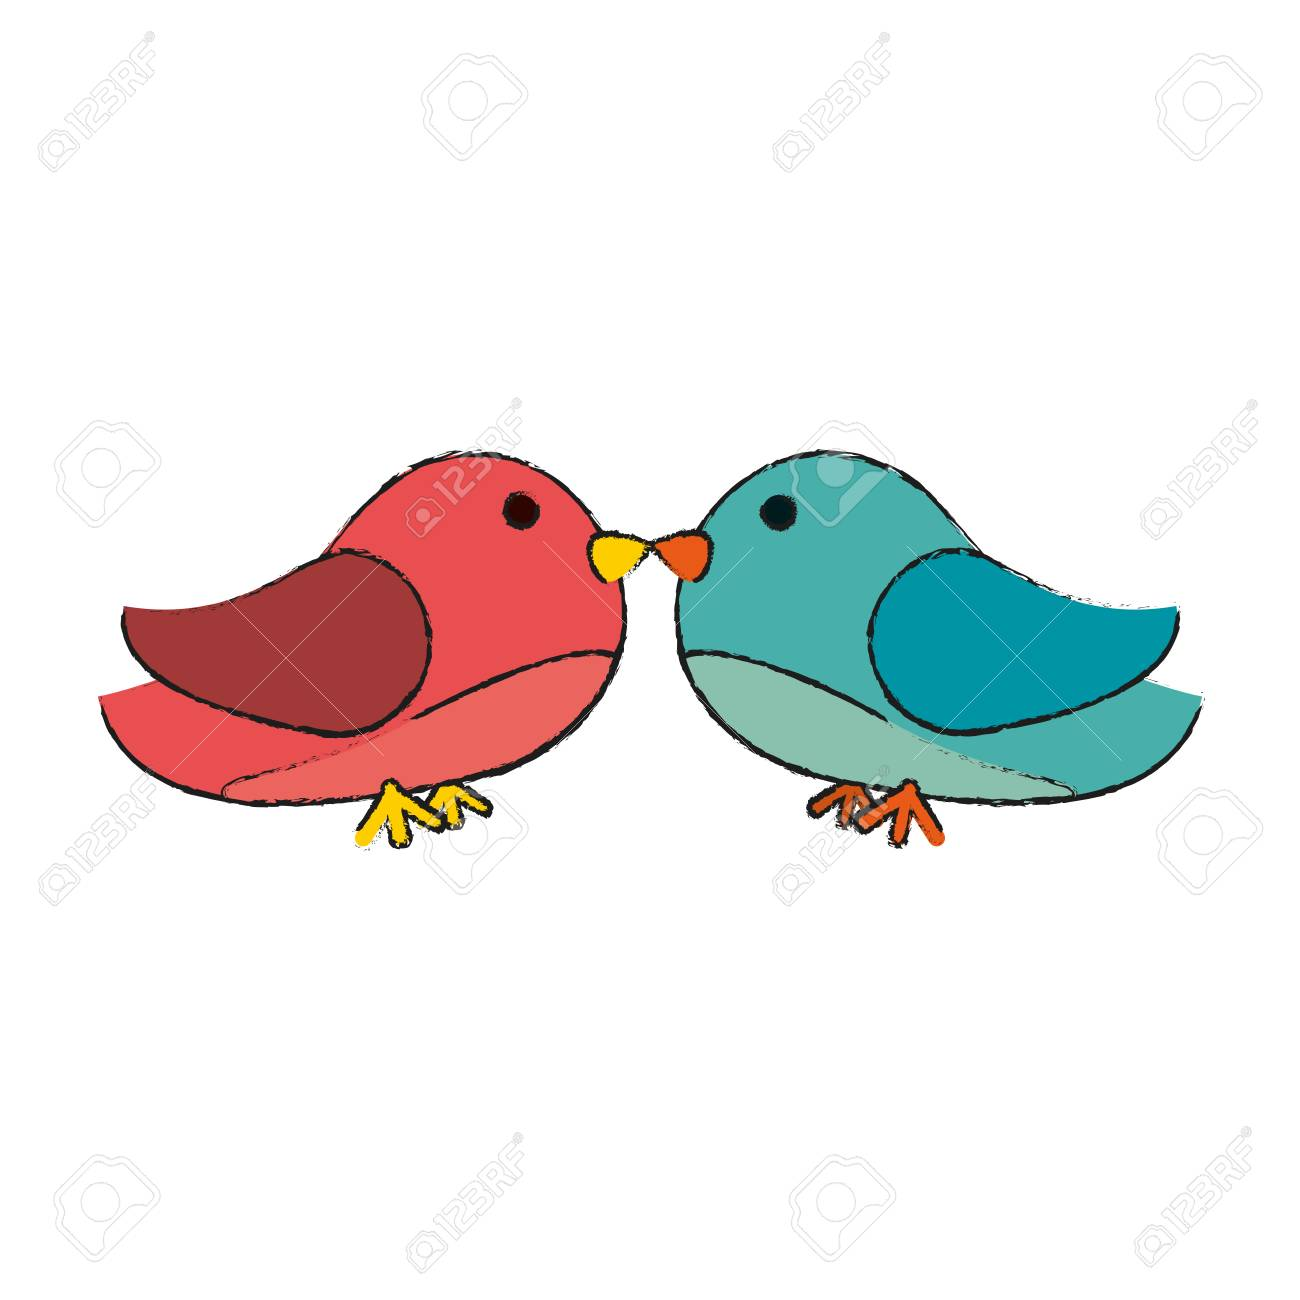 Lovebirds Heart Icon Image Vector Illustration Design Royalty Free ...